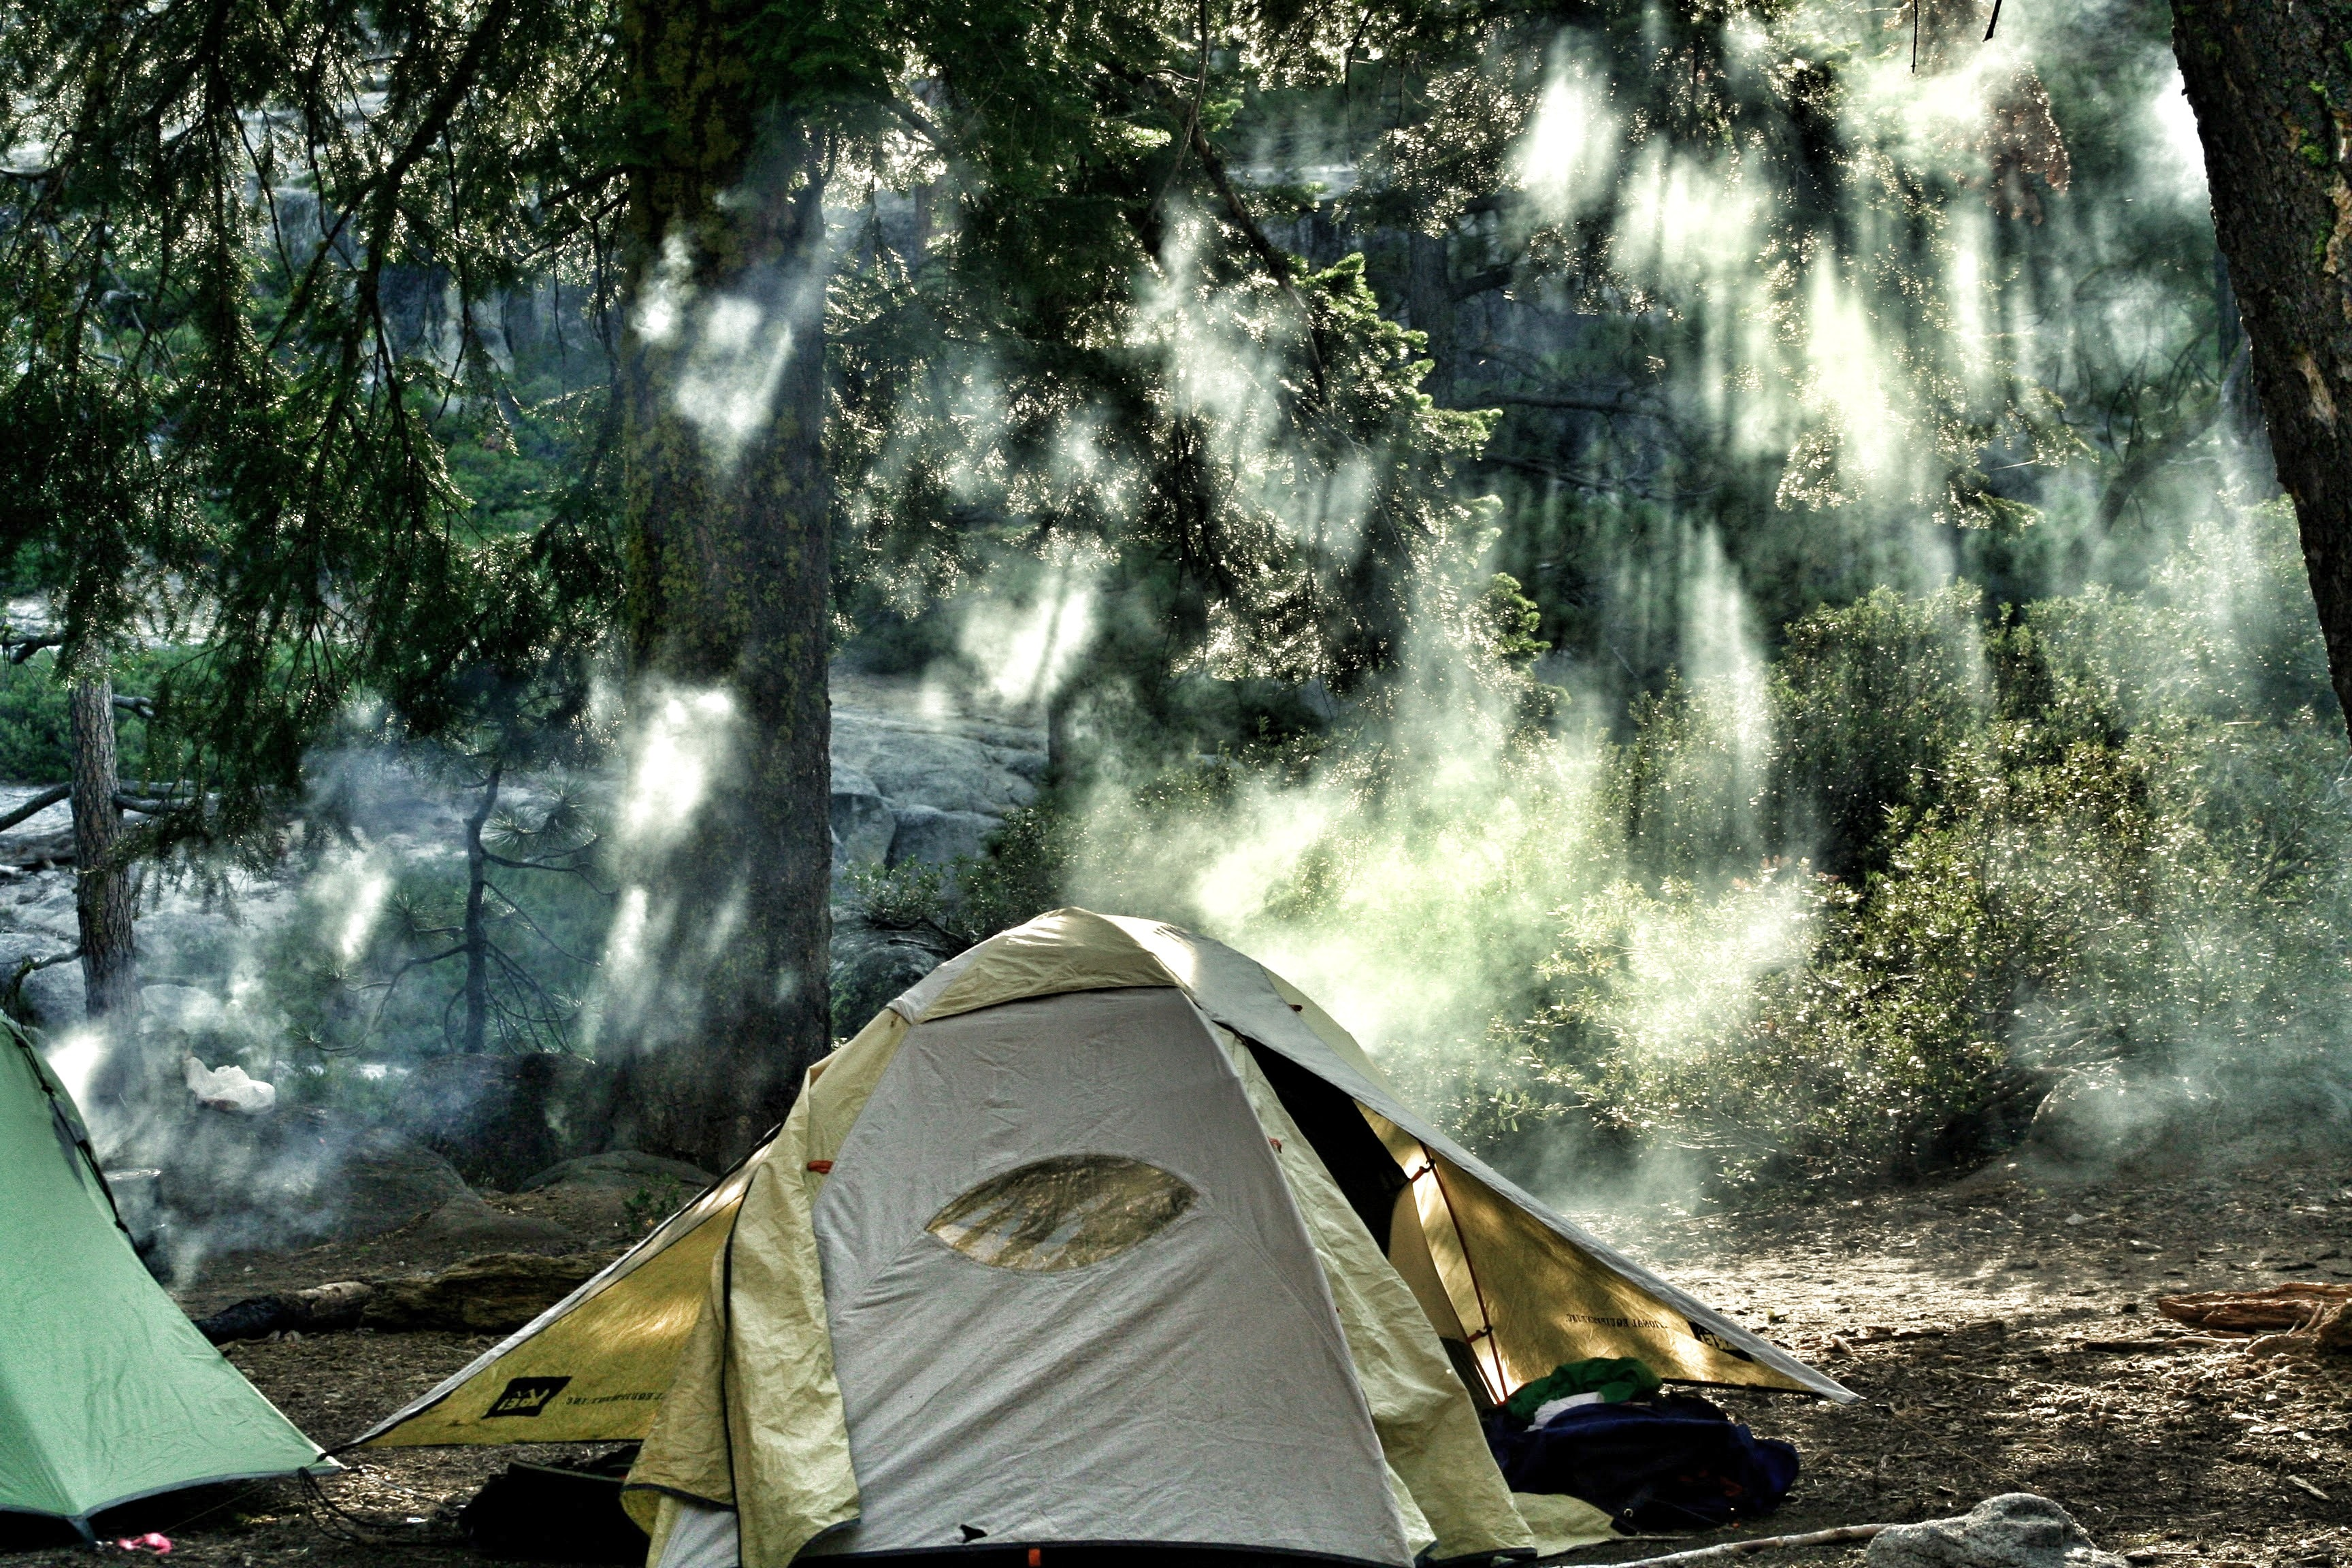 Yellow tent pitched in green wooded area with rays of sun in Yosemite Valley